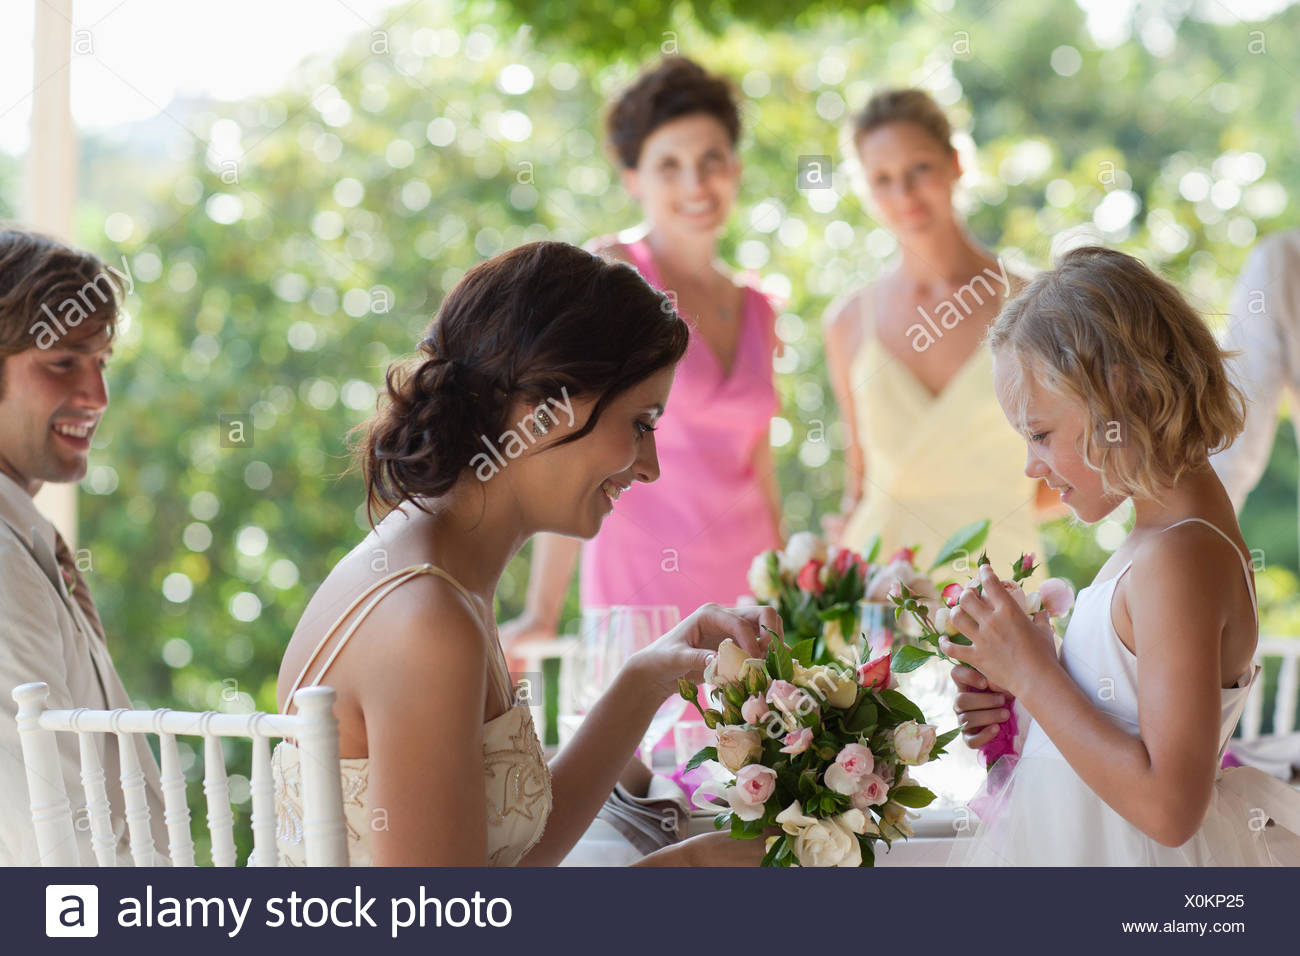 Family celebrating at wedding reception Photo Stock